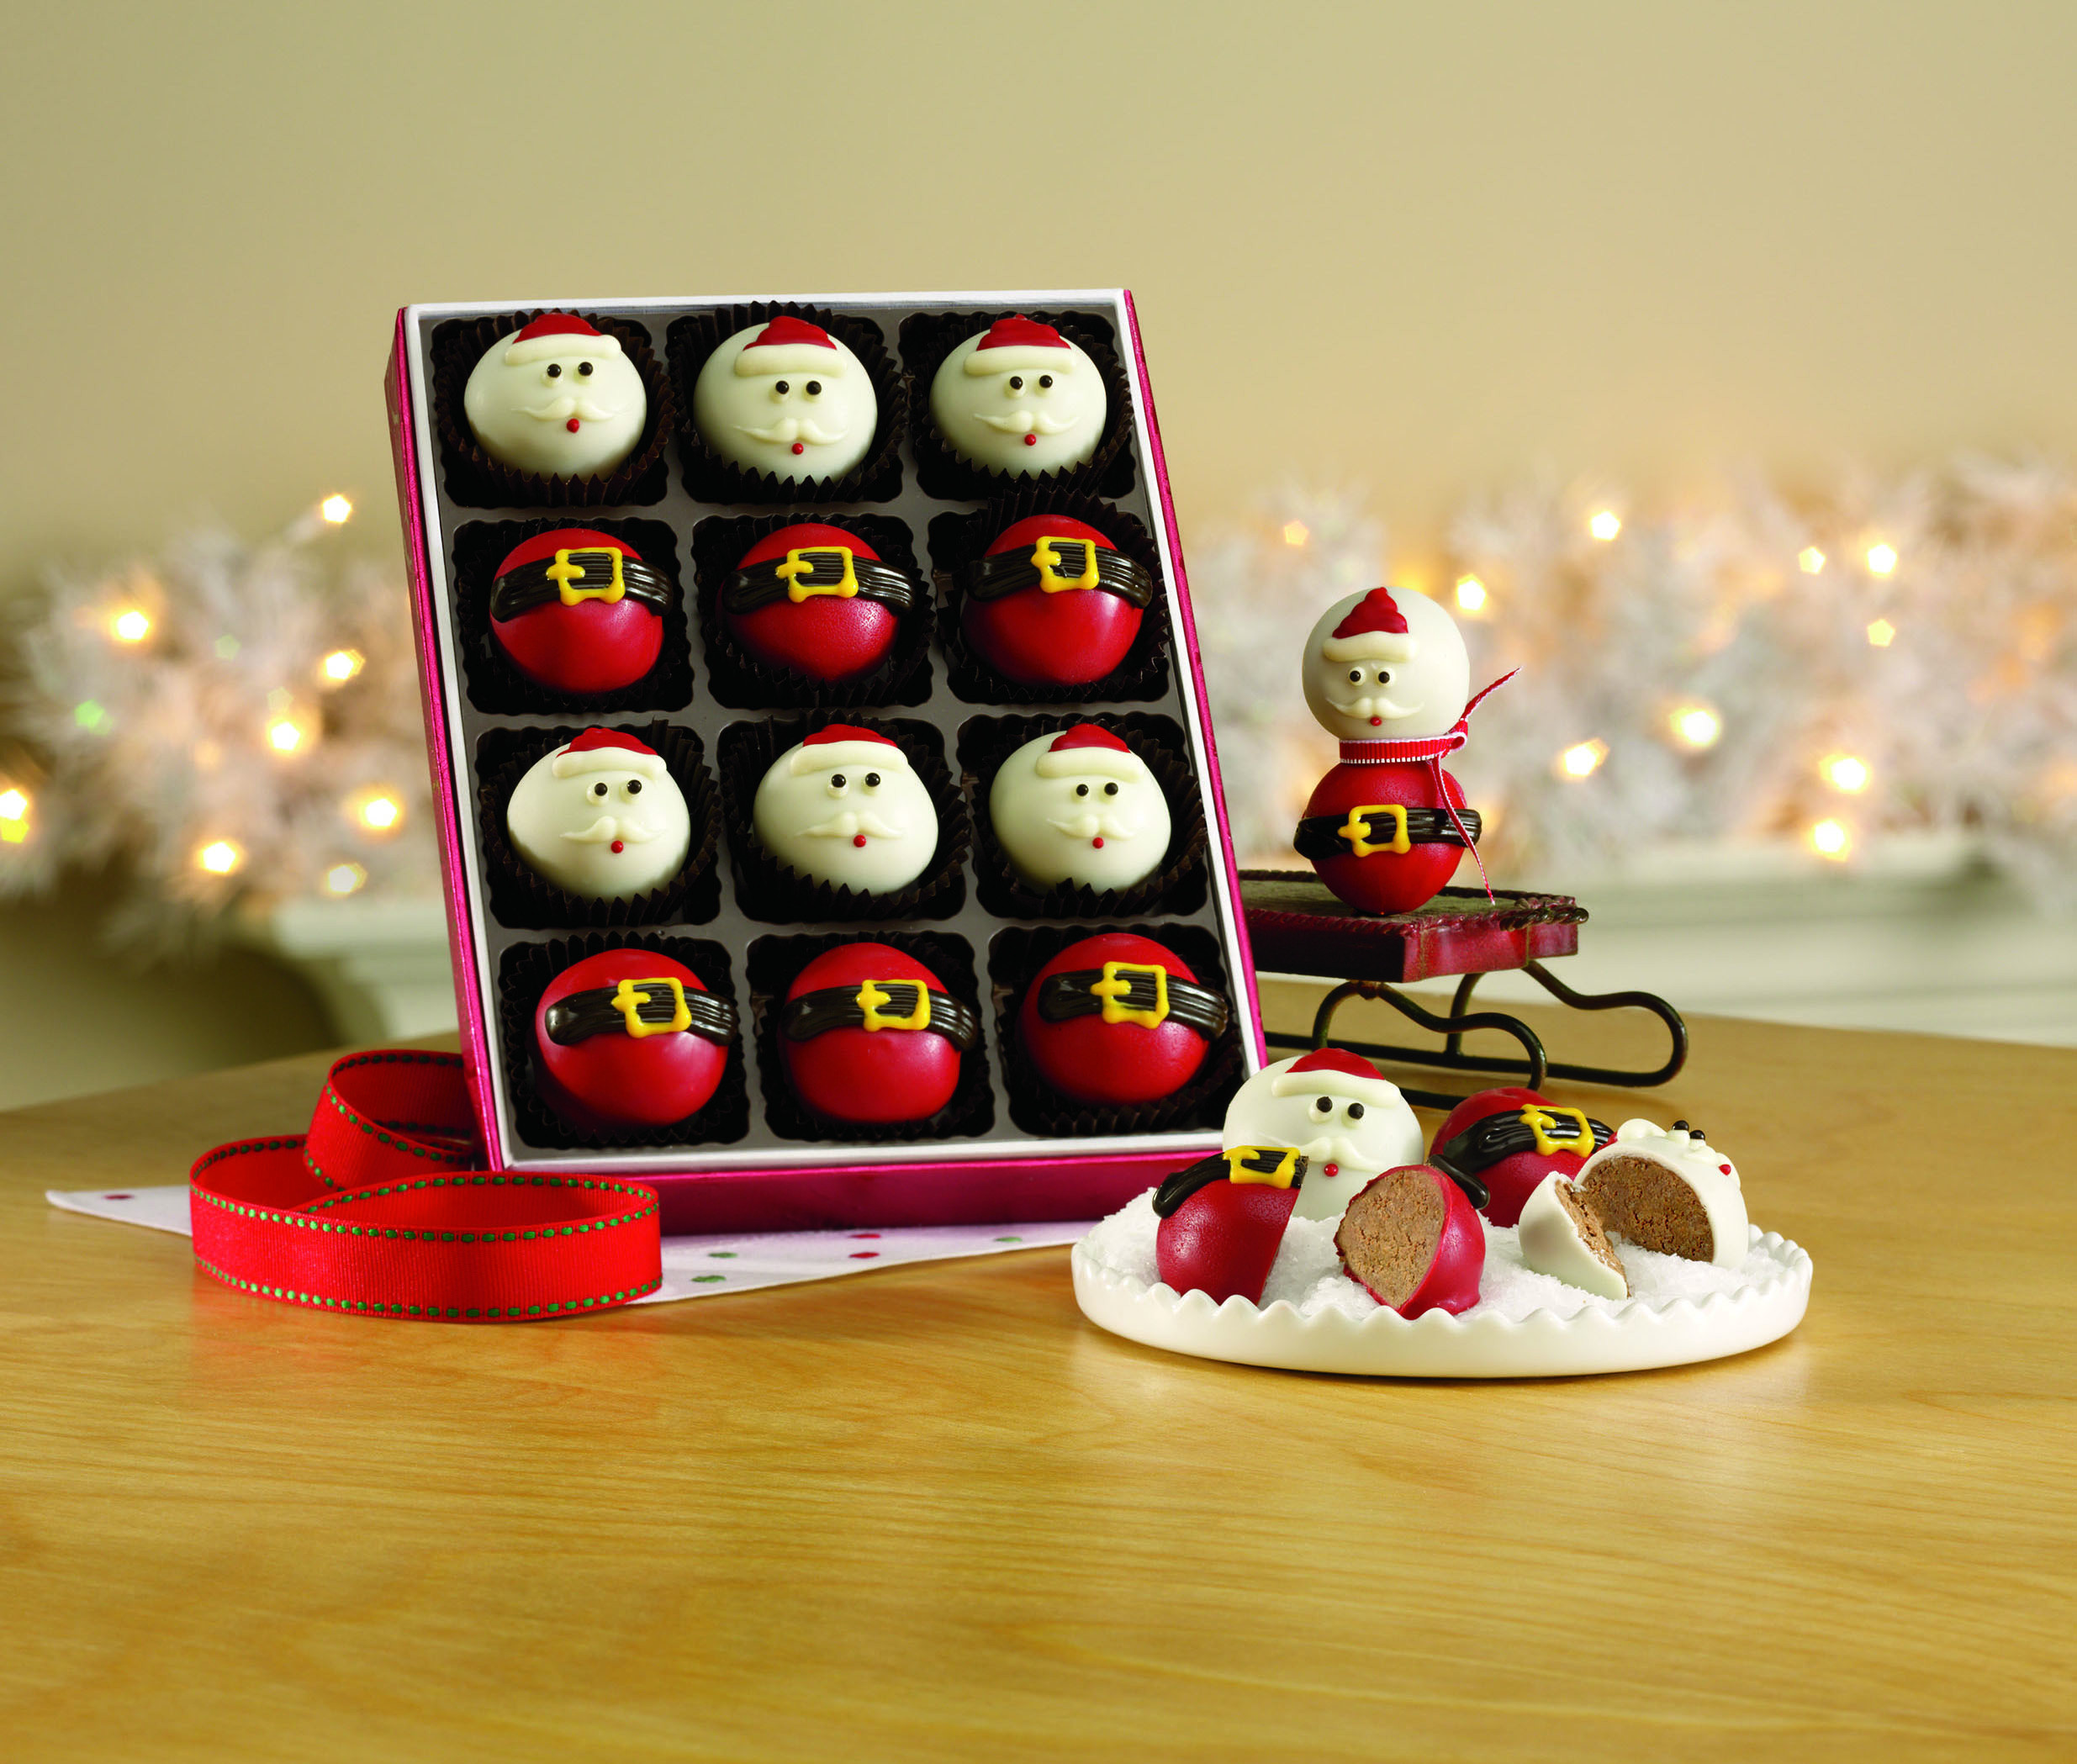 Food Gifts For Christmas To Be Delivered  Tis the Season for Affordable Christmas Food Gifts Under